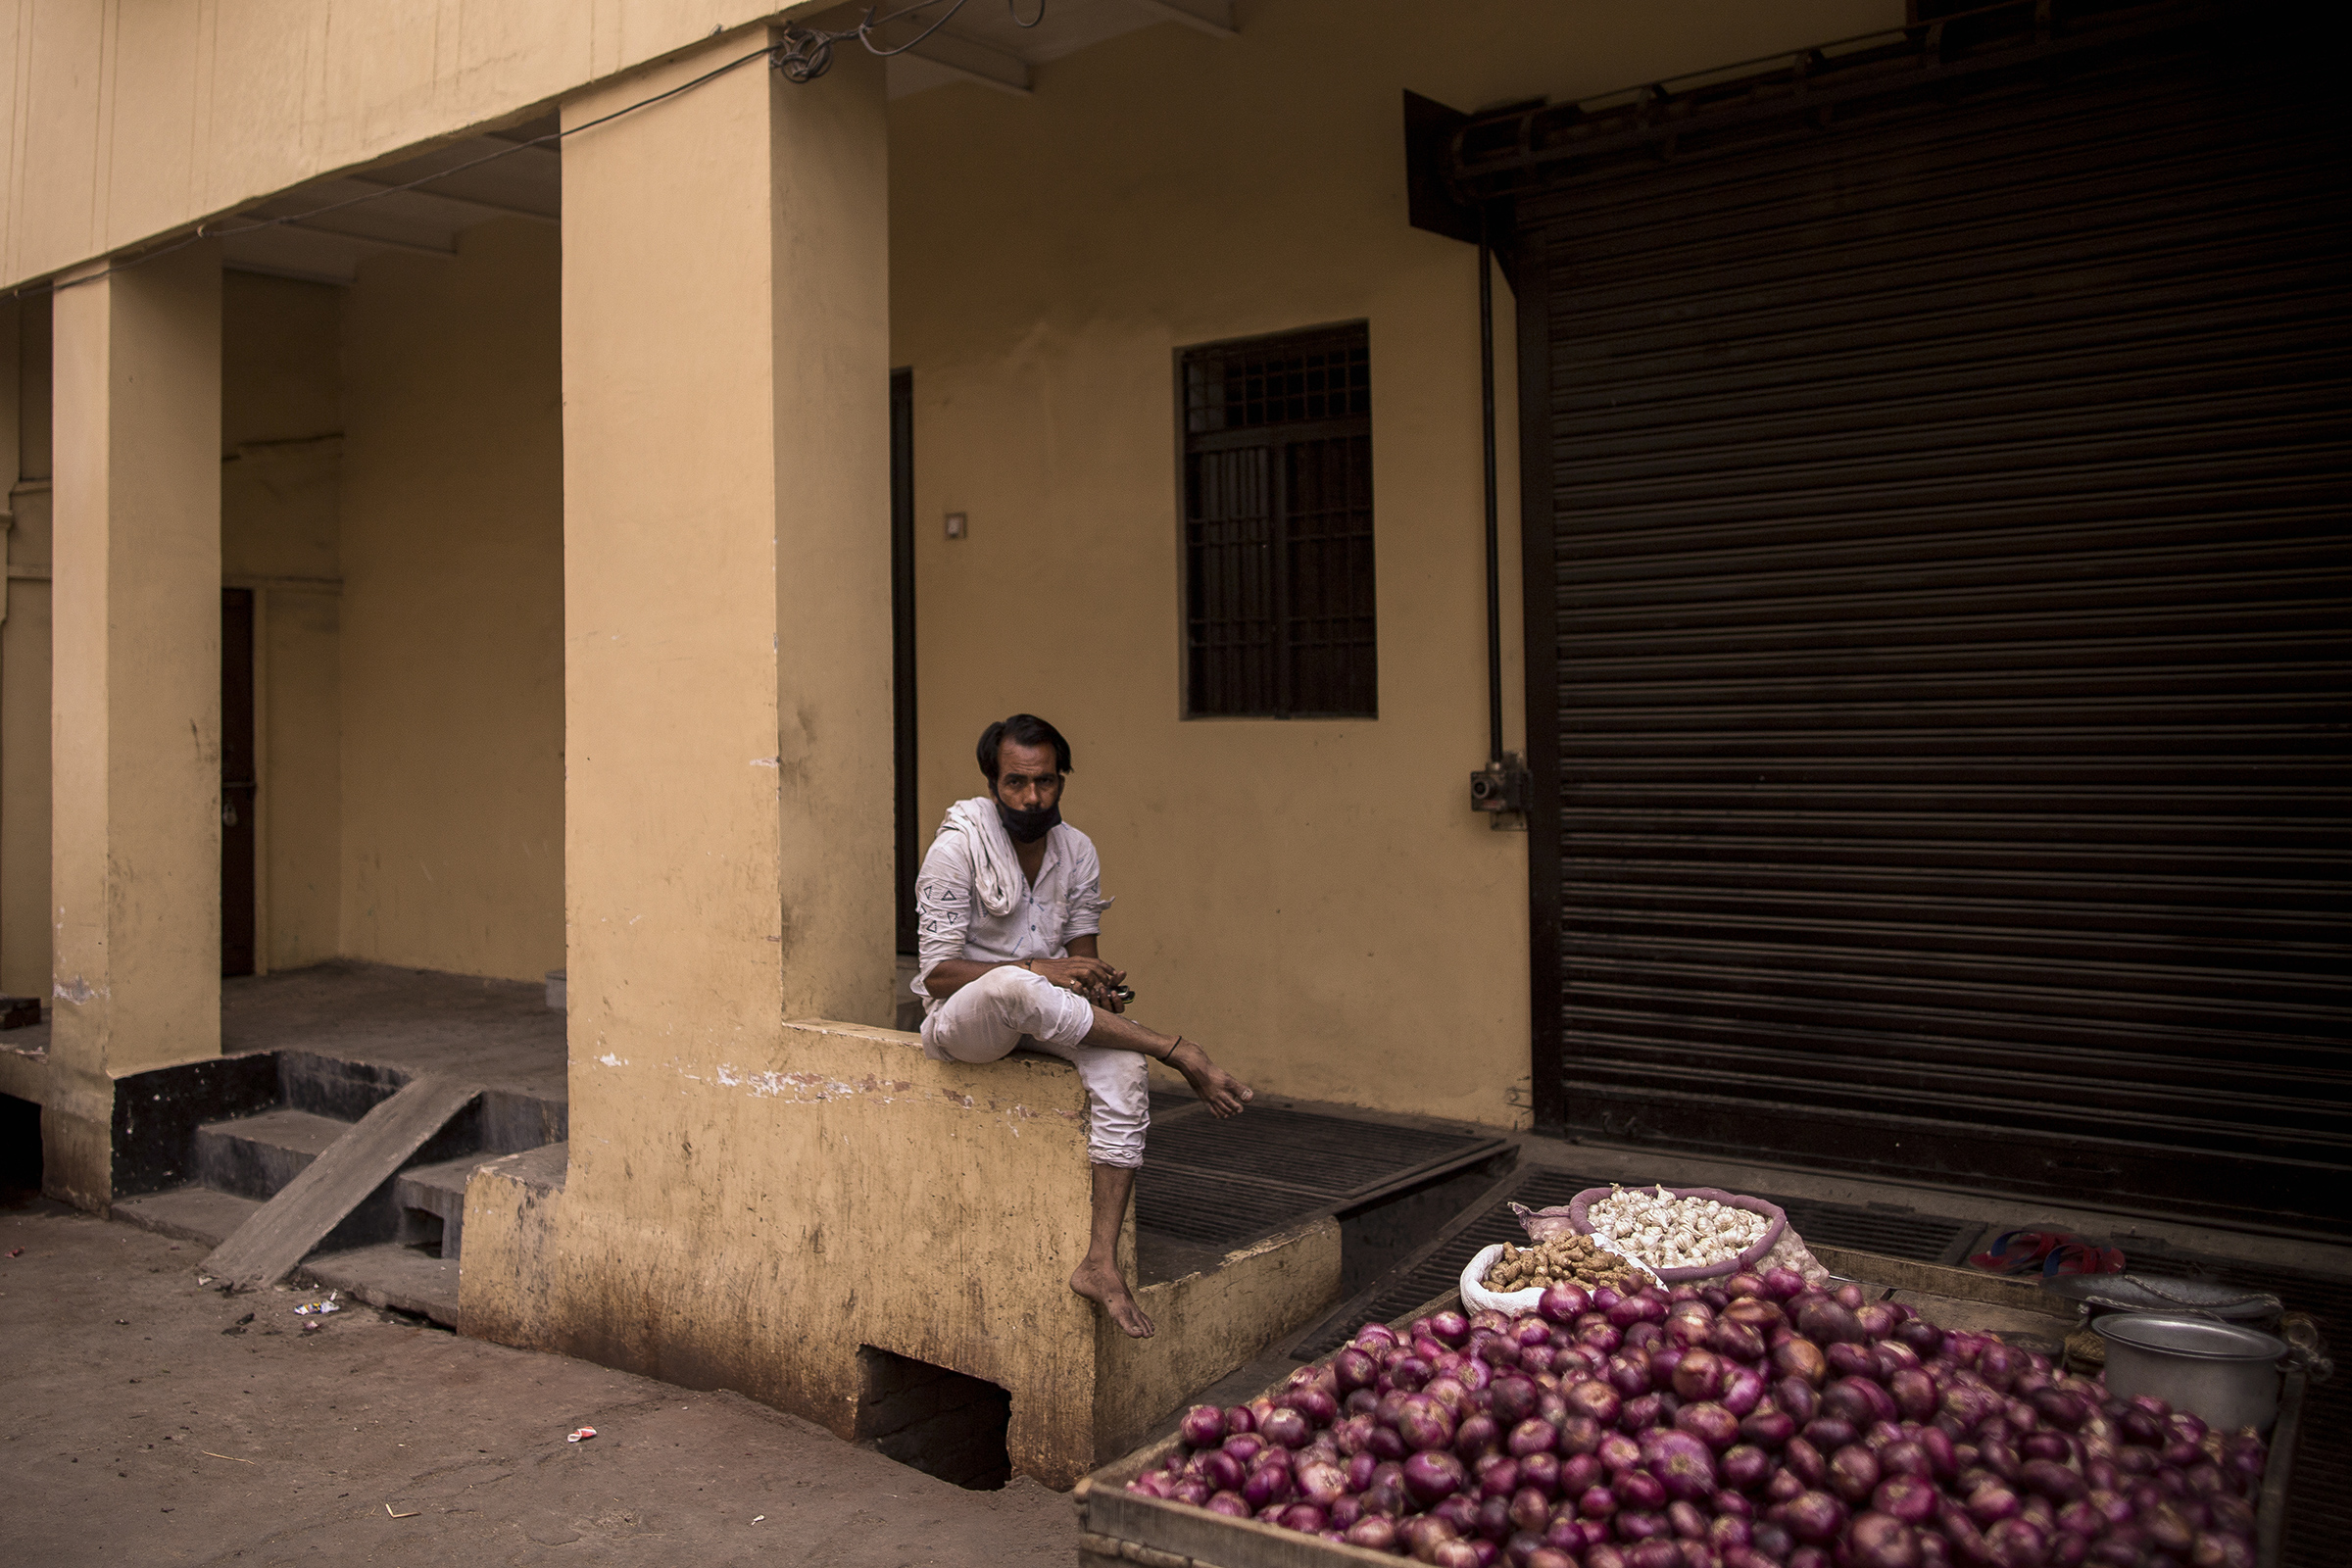 An onion vendor waits for customers on a deserted street during a lockdown in Agra, Uttar Pradesh, on May 3, 2021.